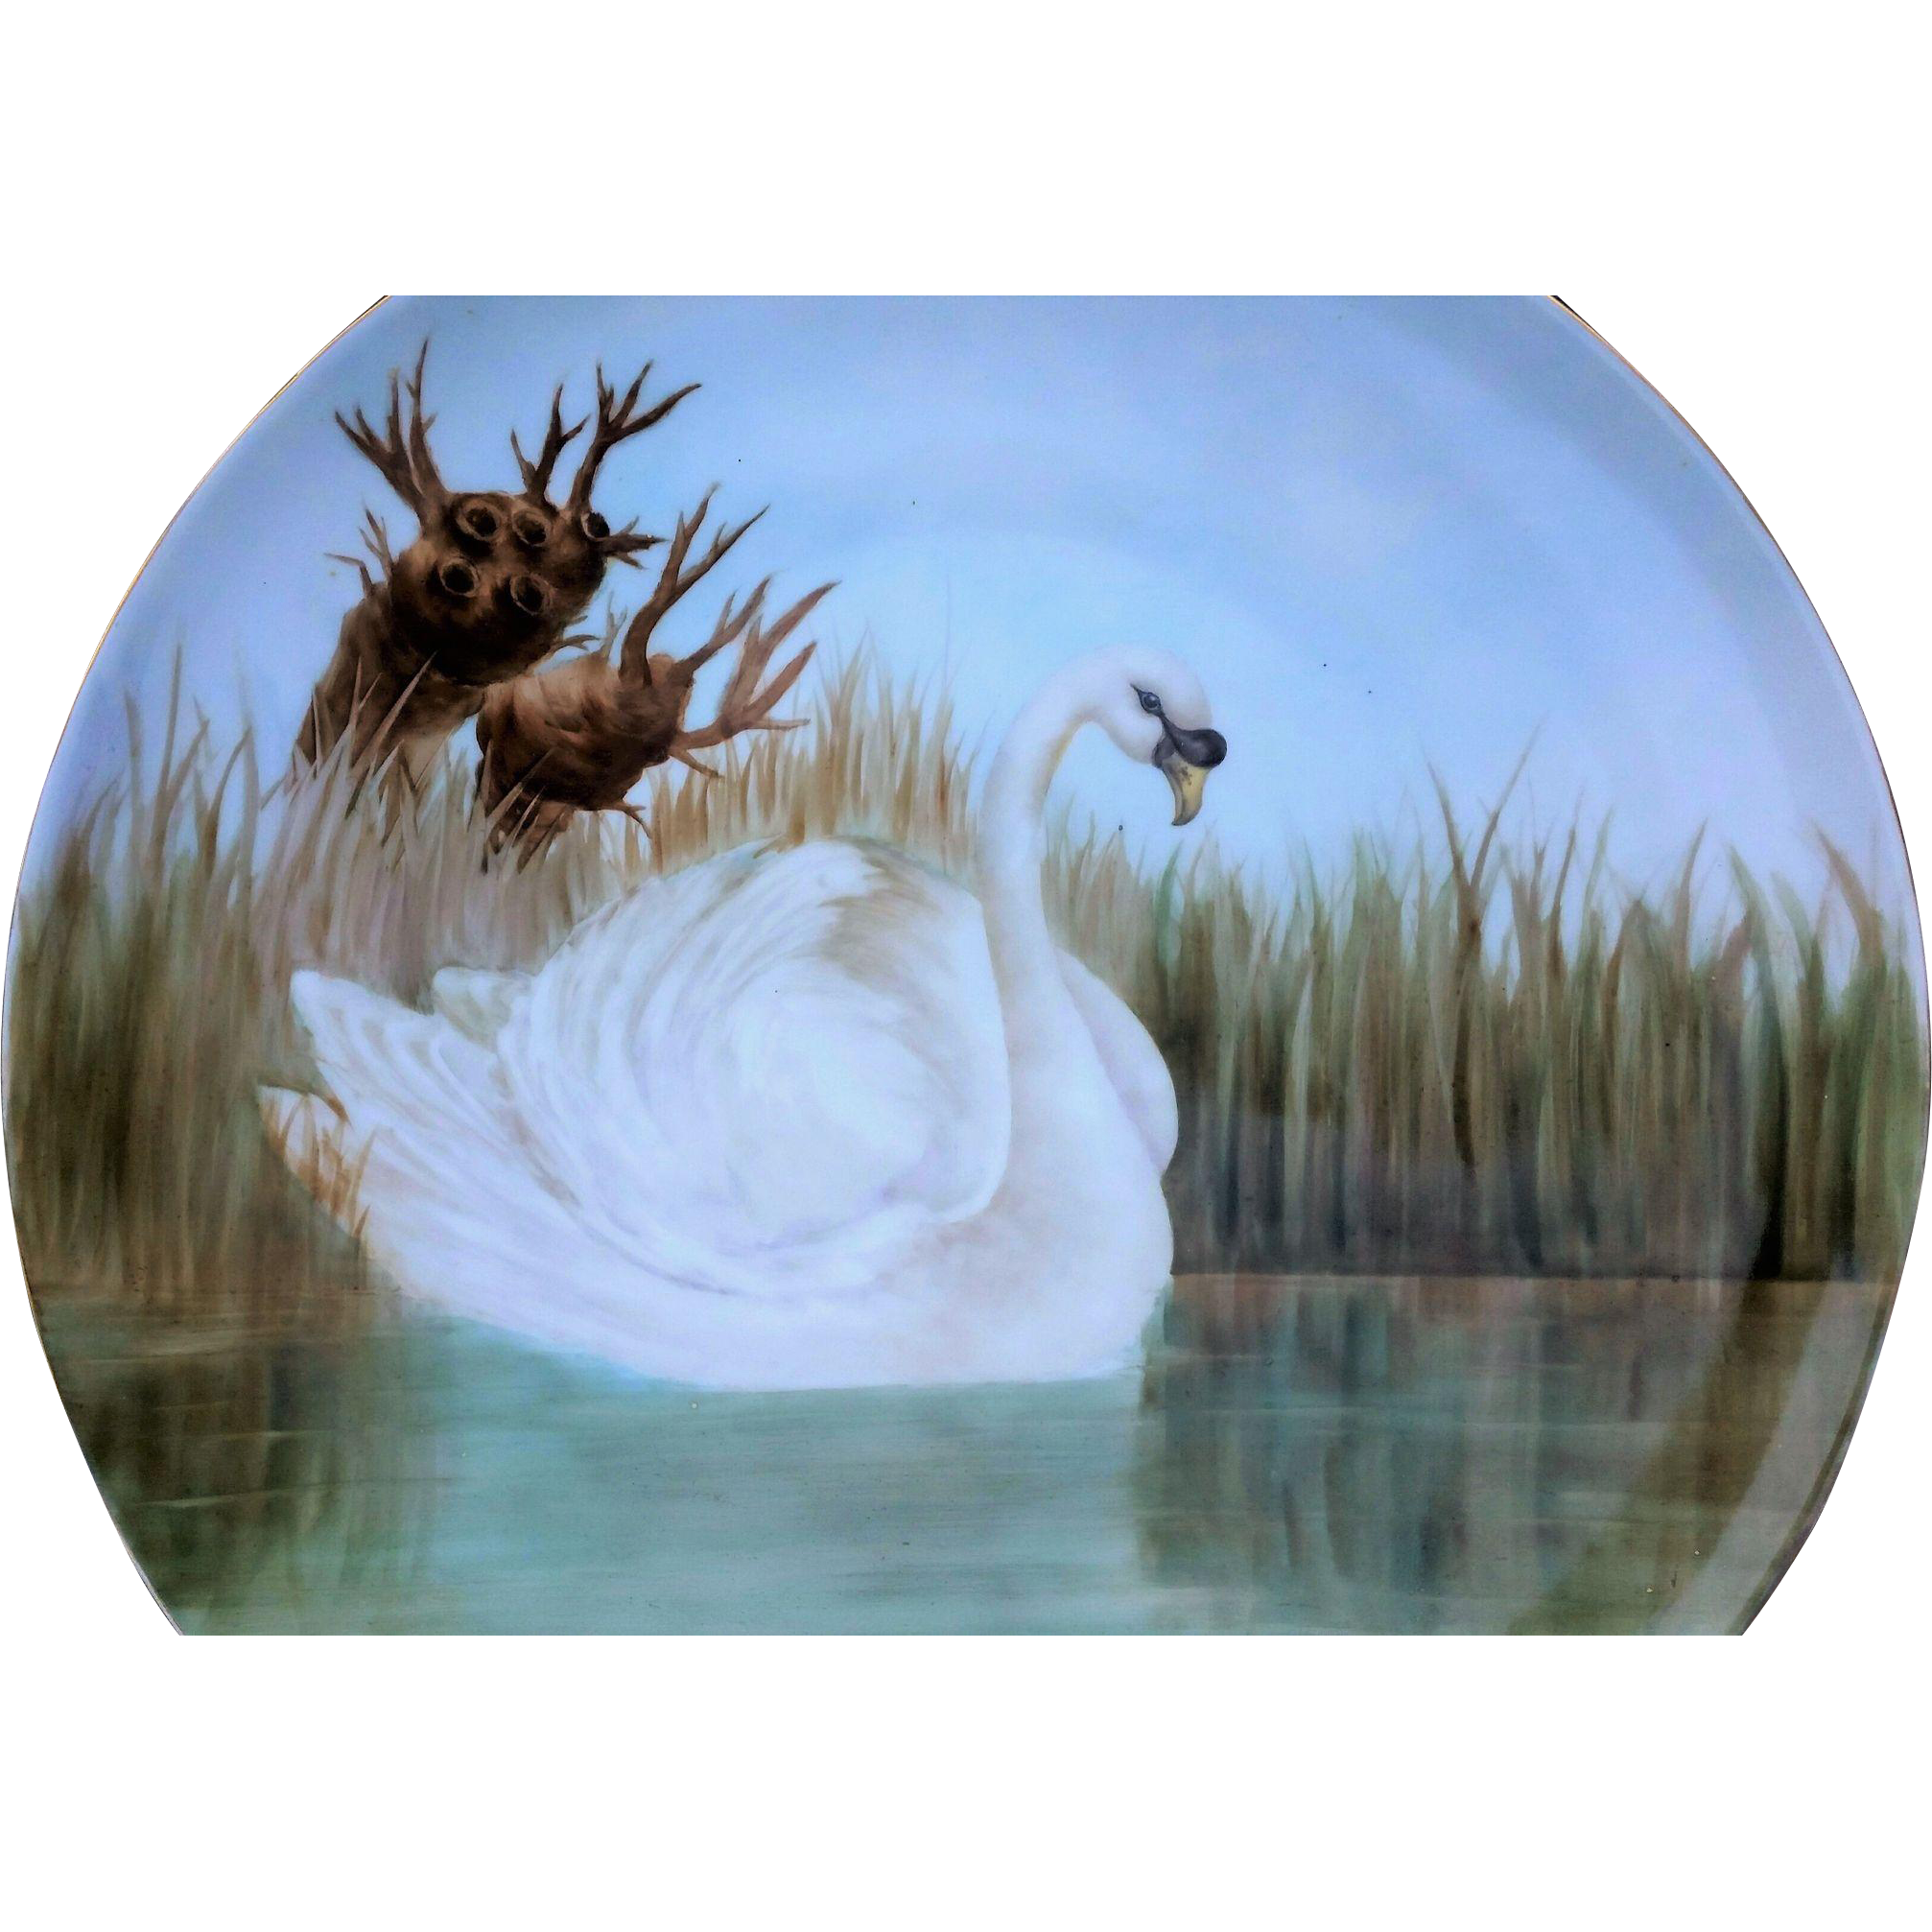 """Beautiful T & V Limoges France 1917 Hand Painted """"White Swan on the Lake"""" 14"""" Scenic Charger by the Artist, """"E. Wisckmann"""""""